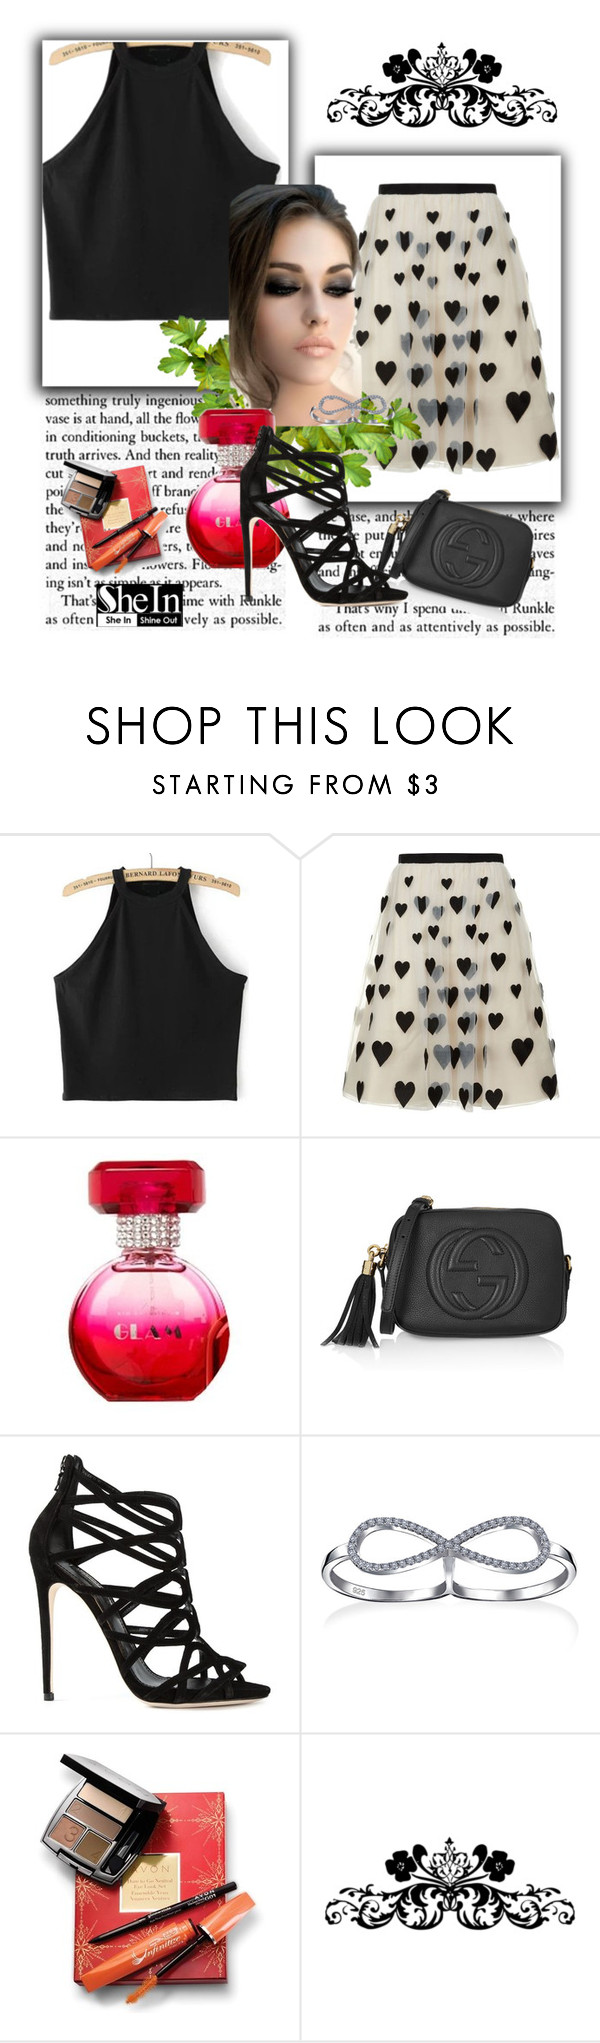 """""""Black Tank Top Shein"""" by dudavagsantos ❤ liked on Polyvore featuring Alice + Olivia, Gucci, Dolce&Gabbana, Bling Jewelry, Avon and shein"""